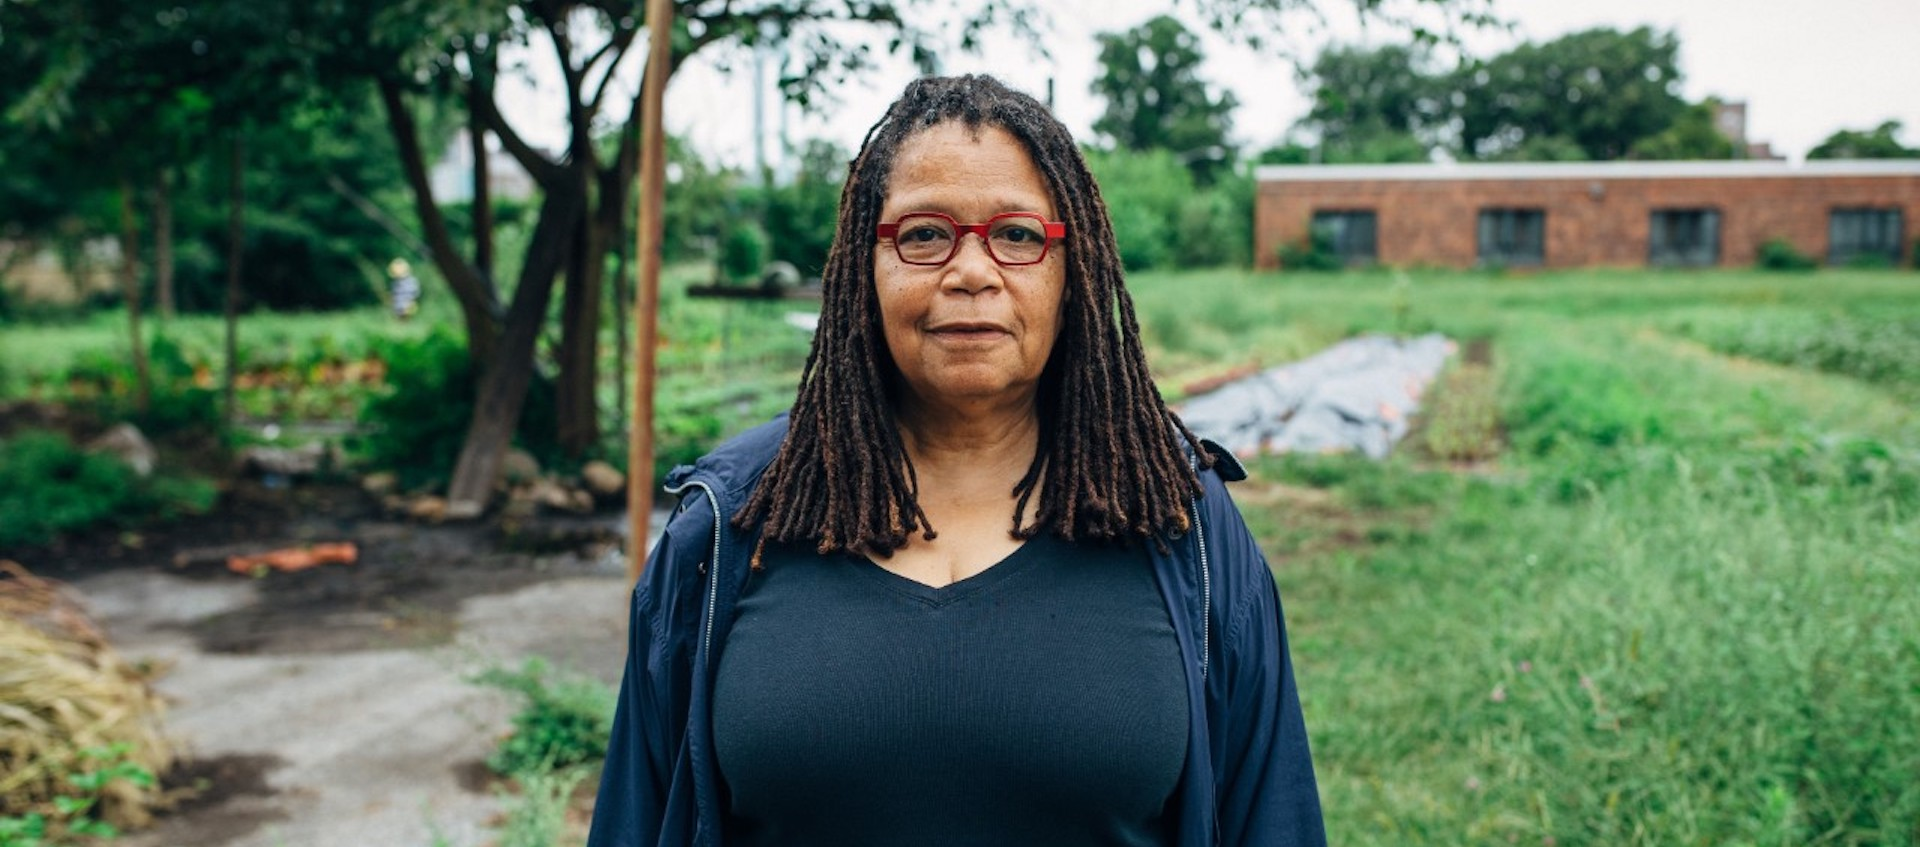 Artist and activist Linda Goode Bryant, wearing a dark blue shirt and glasses, stands outside in a grassy area with a vegetable garden to the side and a brick building in the distance